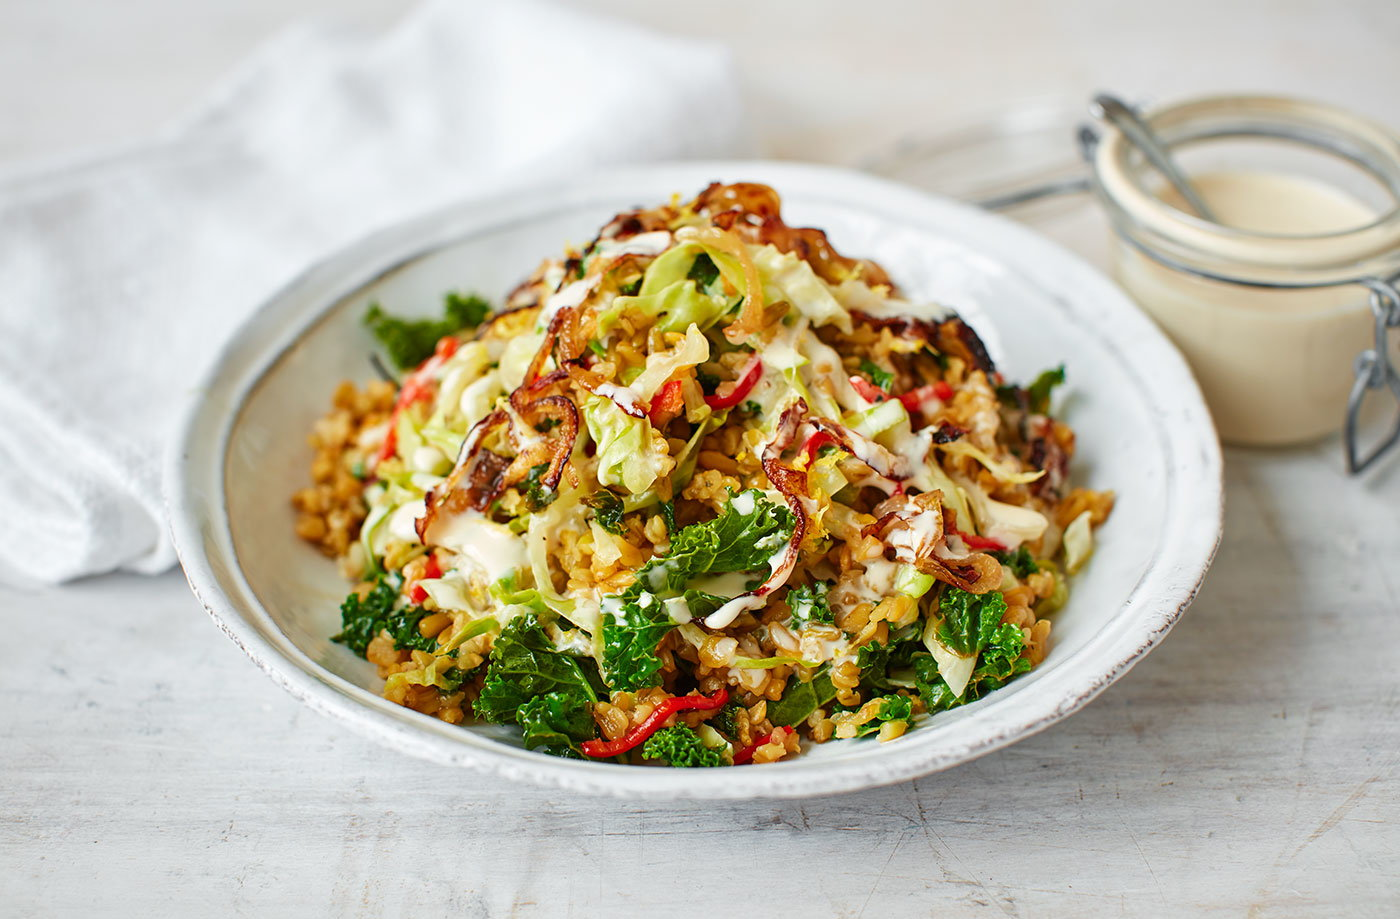 Grains, stir-fried greens and tahini dressing recipe